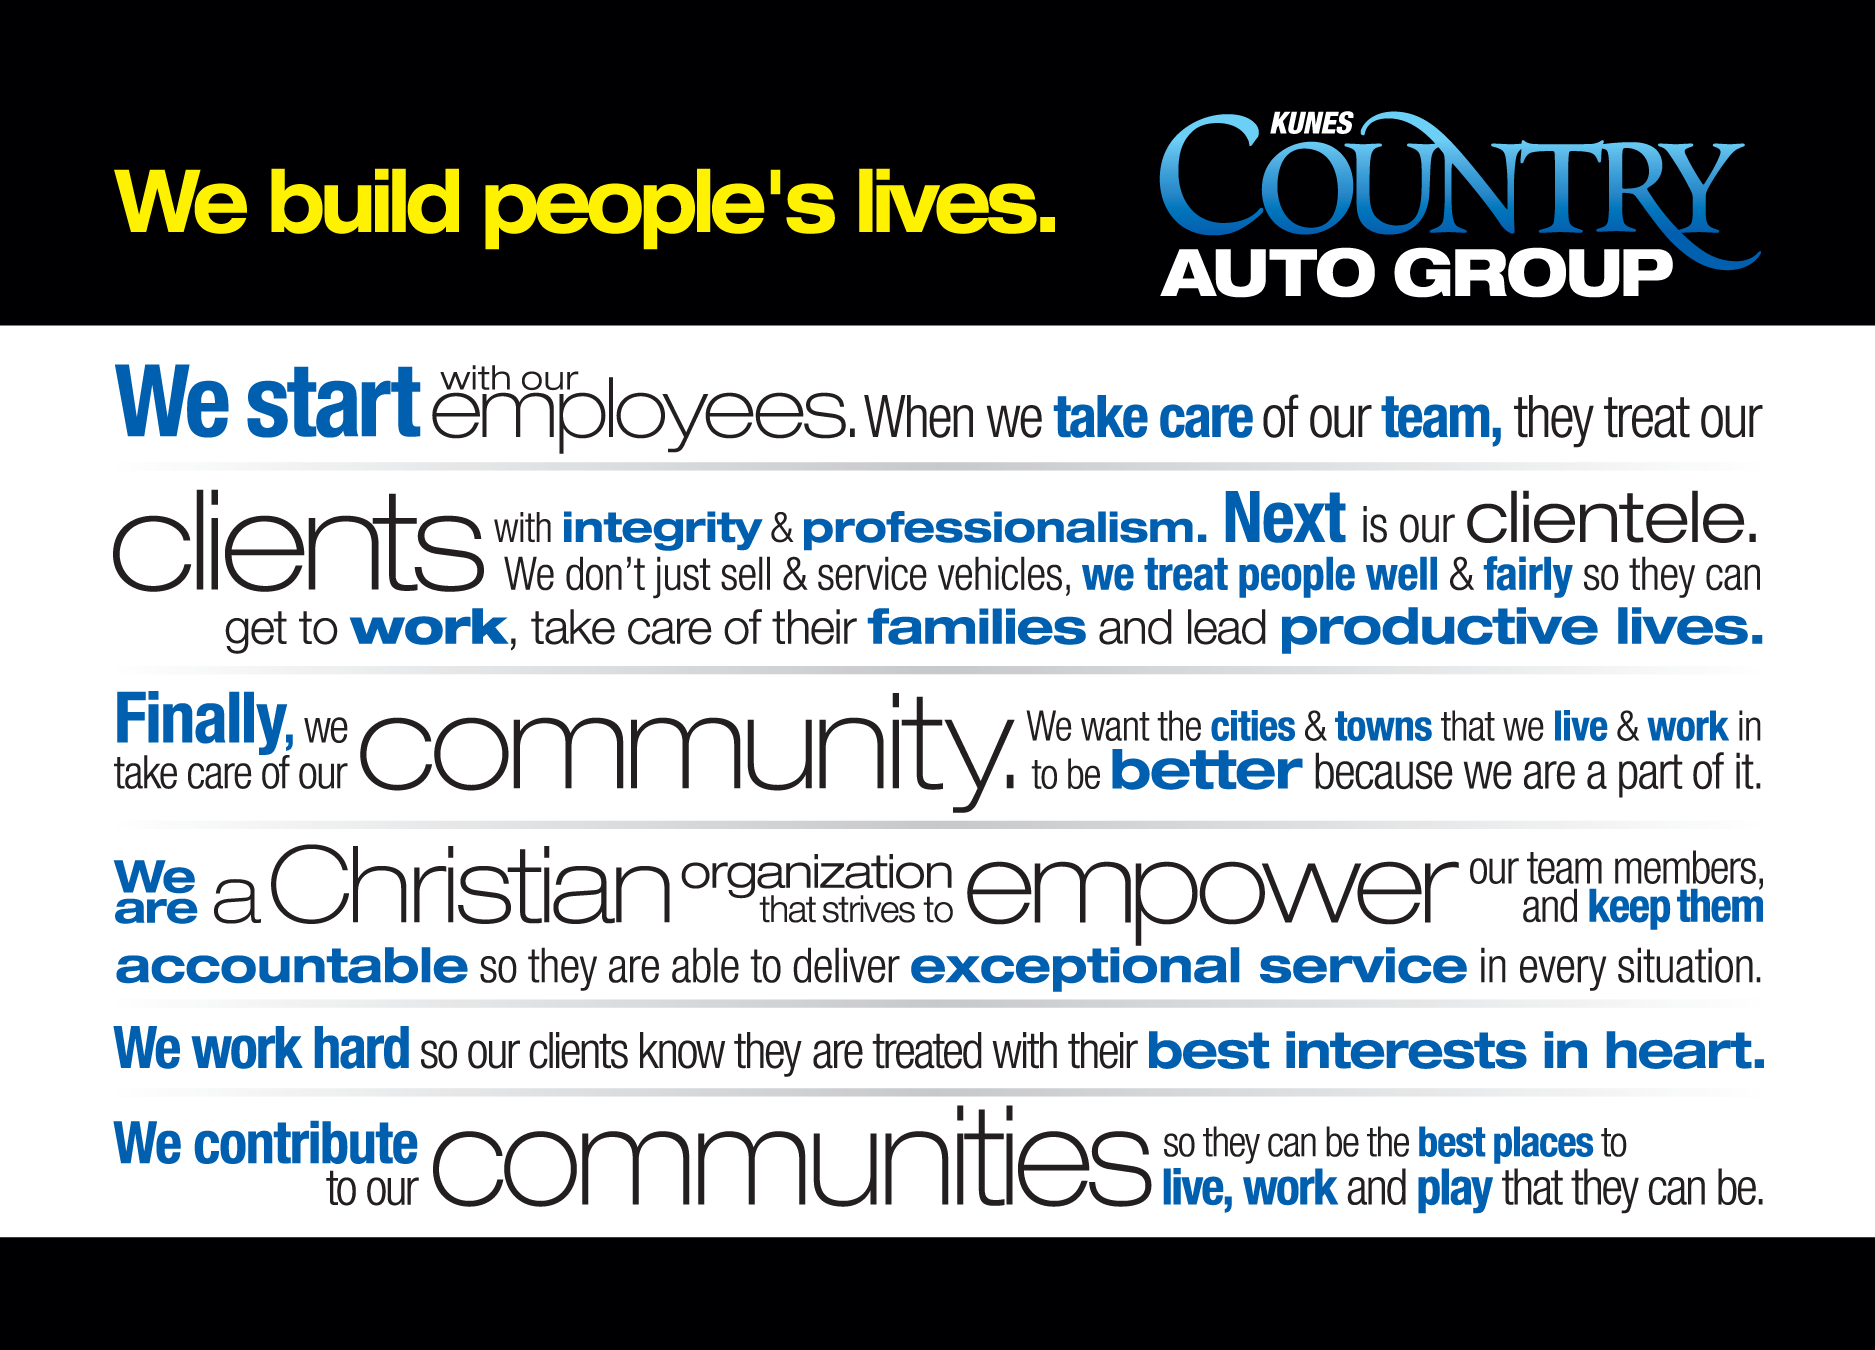 We build Peoples lives -Kunes Country GMC